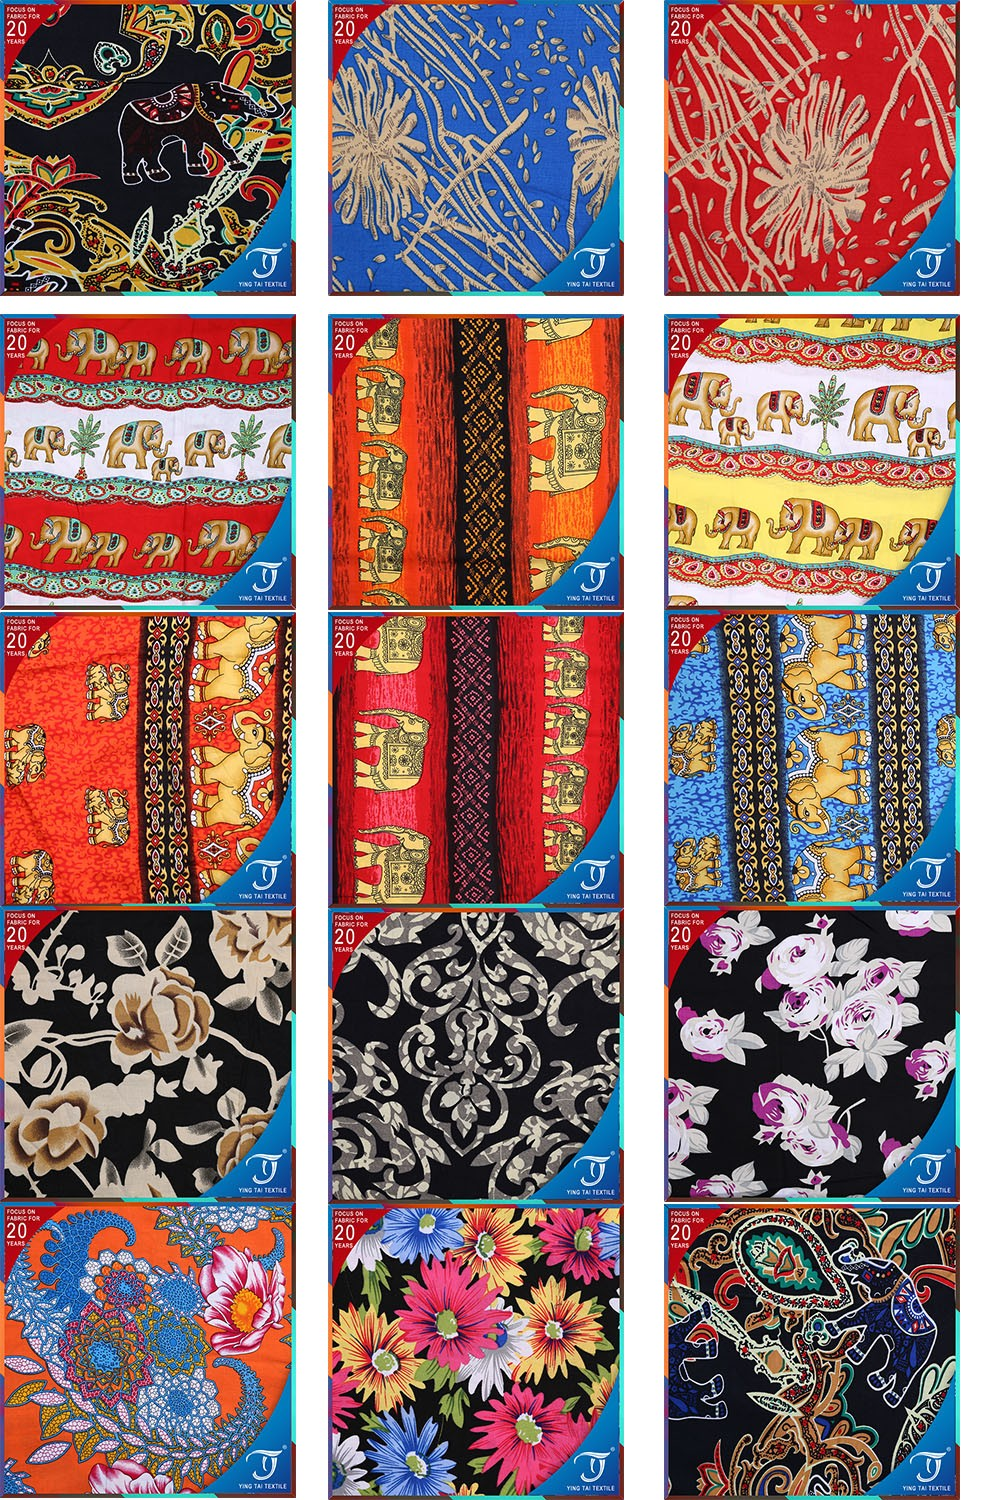 fabric dating Old catalogs, ads, pattern and fashion magazines like the delineator, reference books such as dating fabrics by eileen trestain, 1998, plus your personal knowledge are useful tools for a decade-by-decade comparison of fabrics.